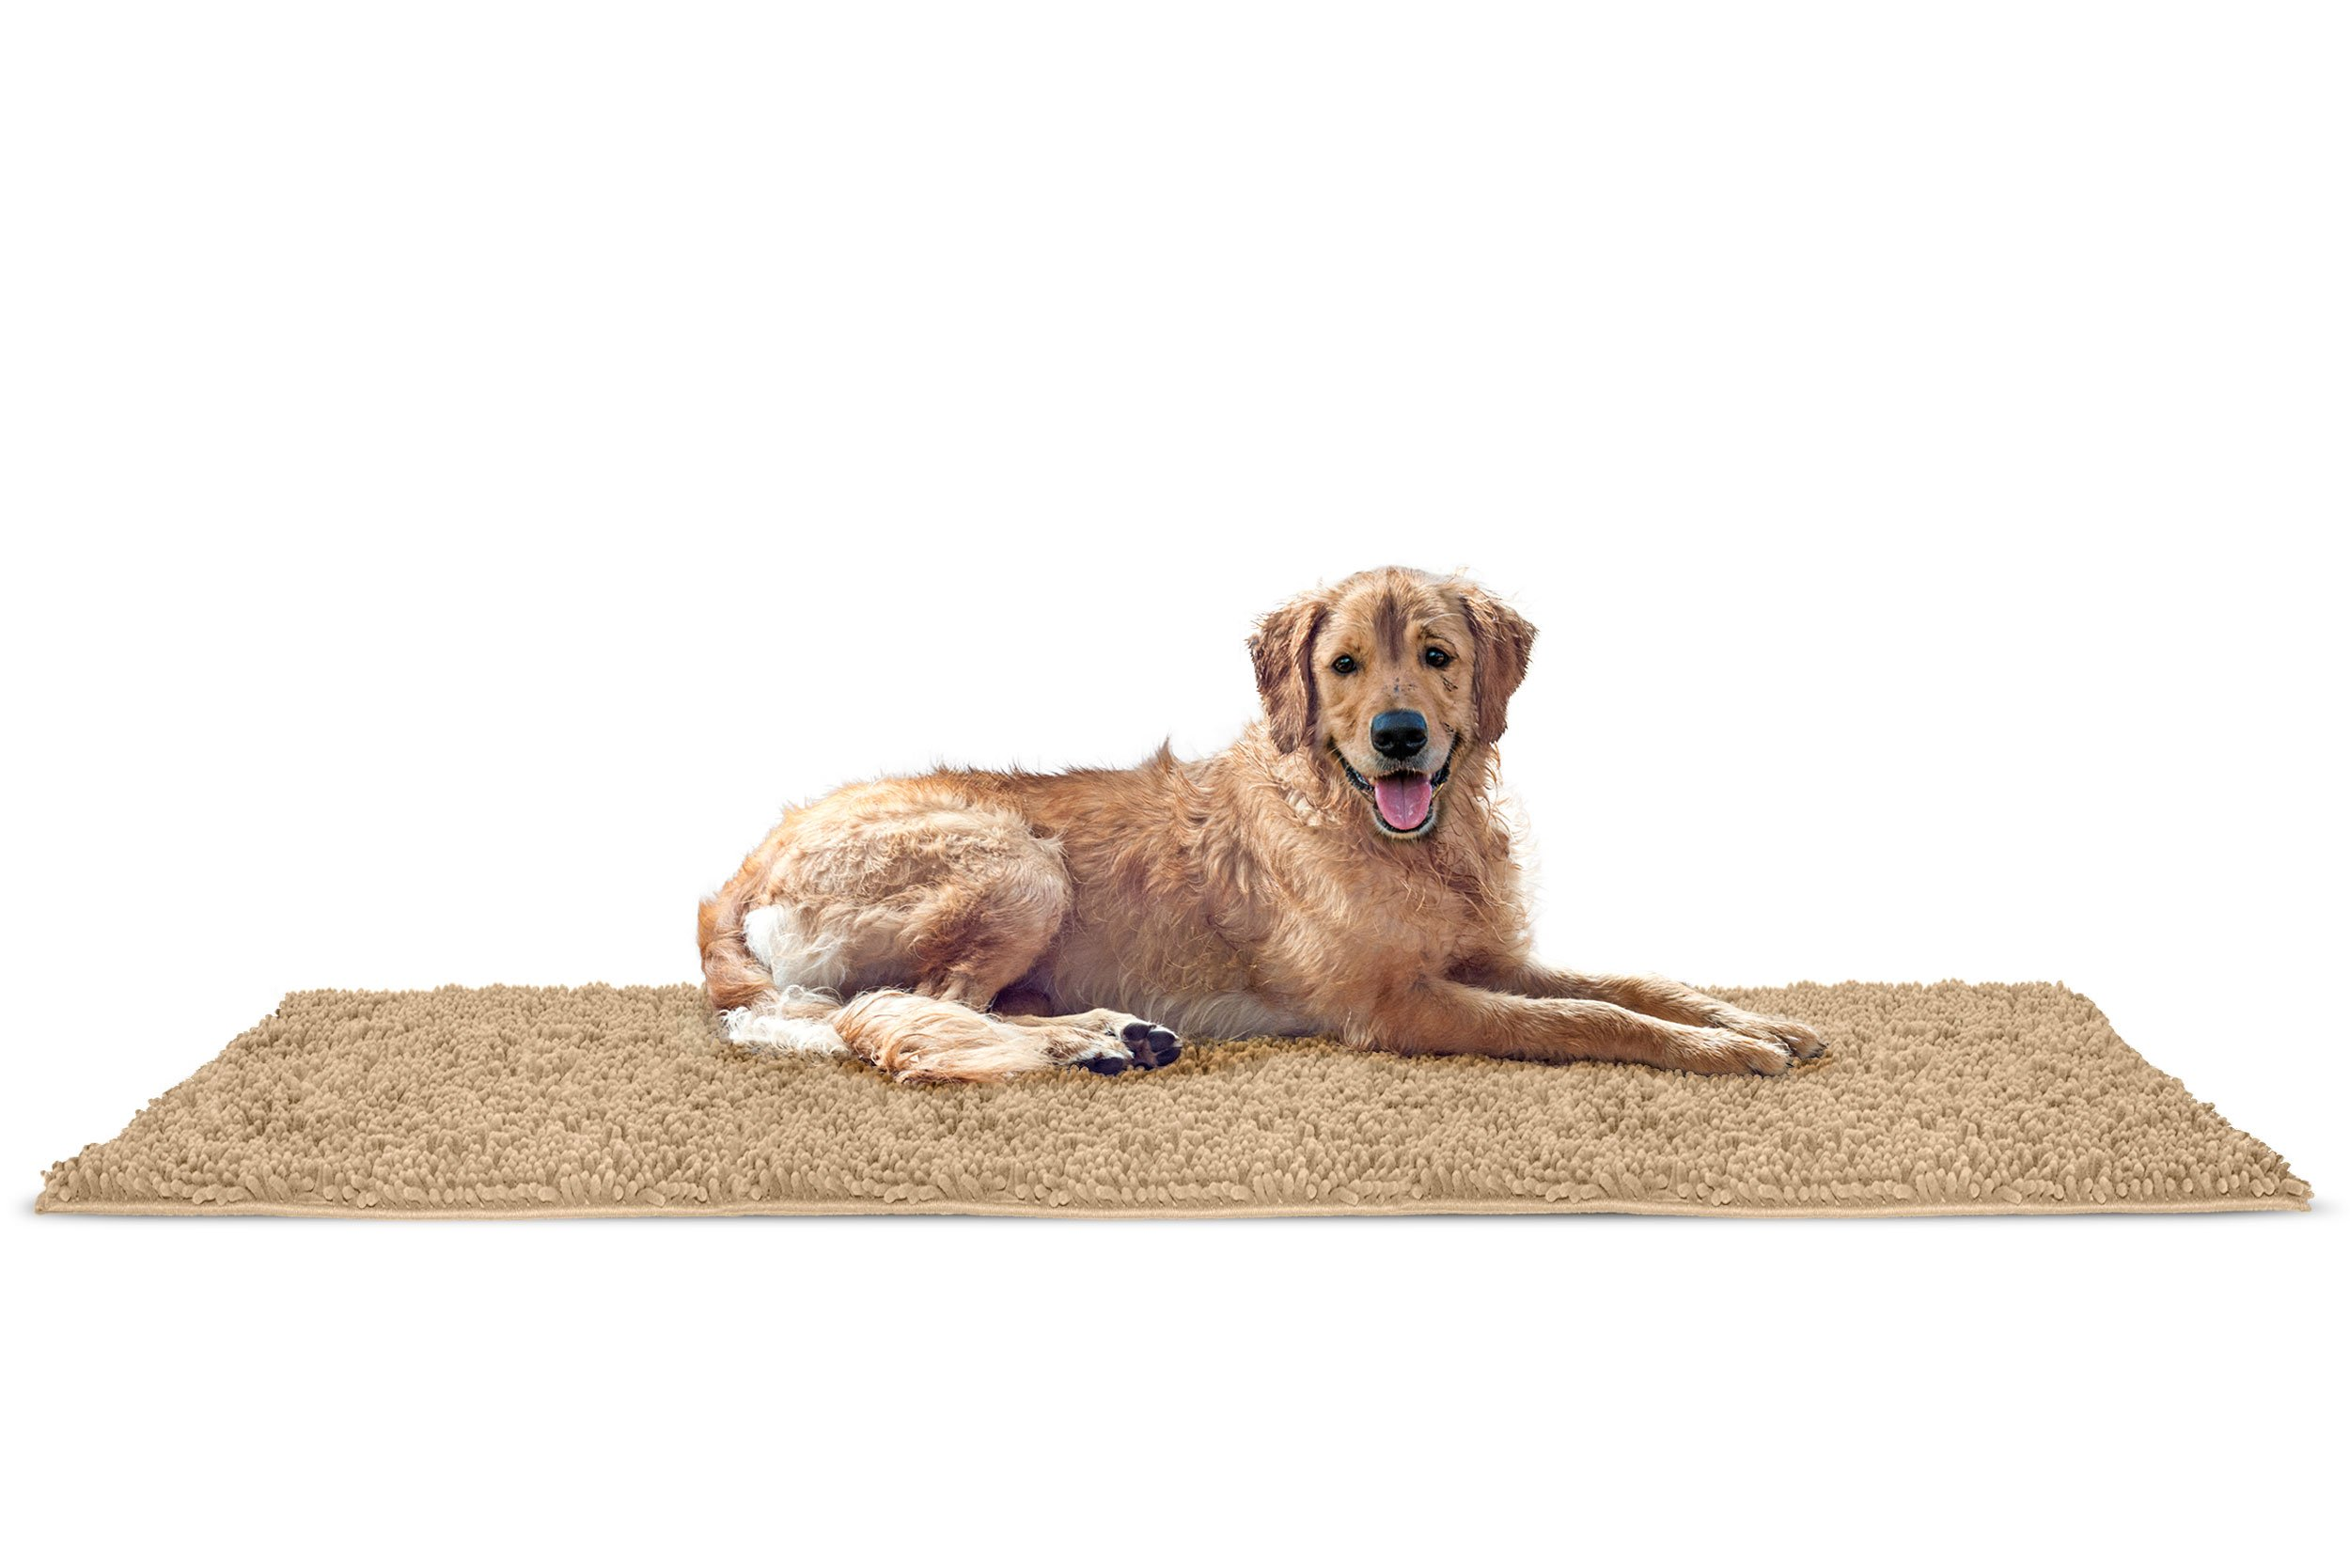 Furhaven Pet 80551613 Runner Muddy Paws Towel & Shammy Rug - Sand